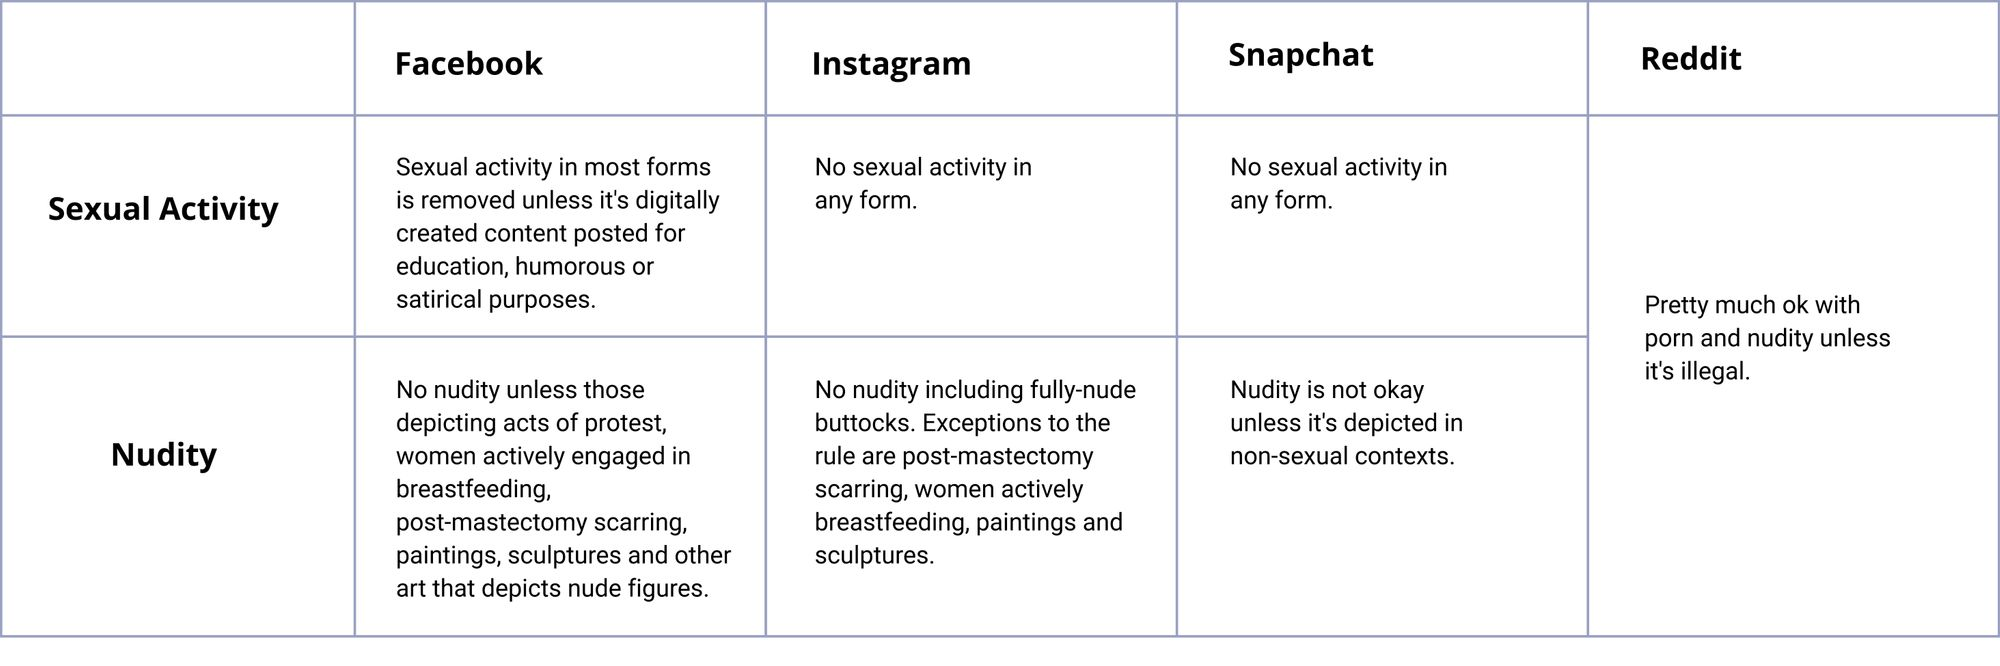 content guidelines for other major social networks